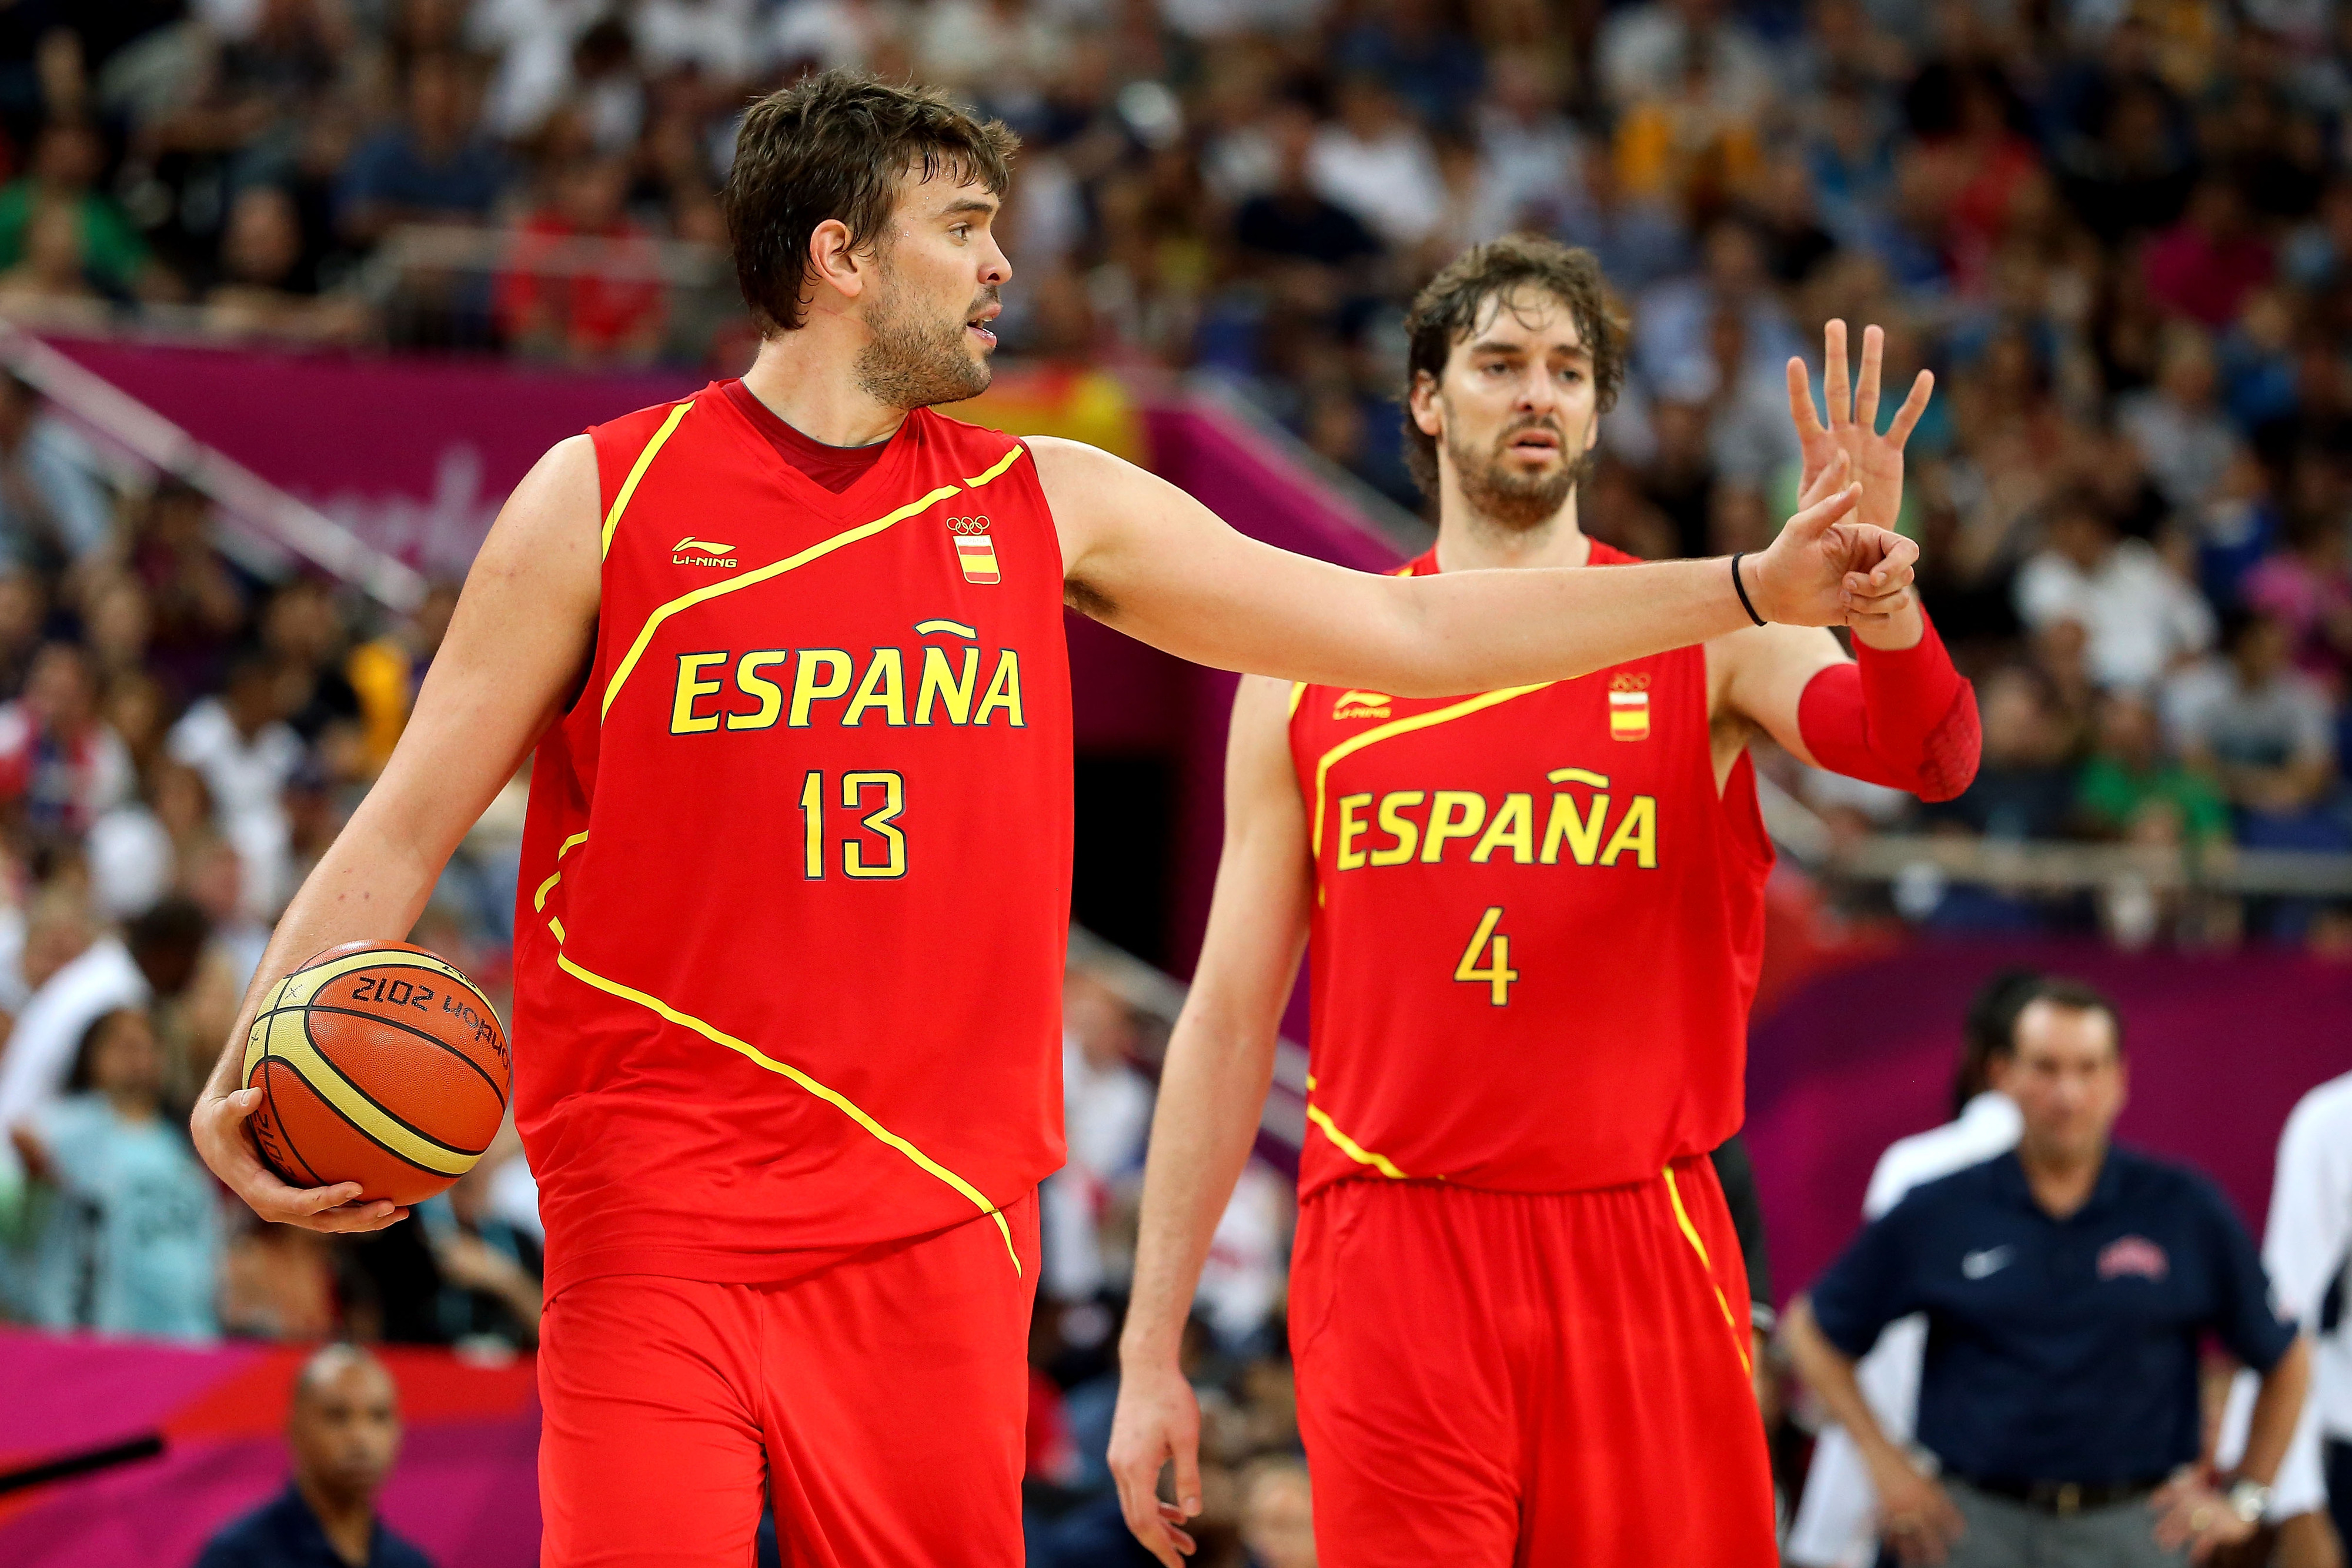 FIBA World Cup 2014 preview: Spain is Team USA's No. 1 threat